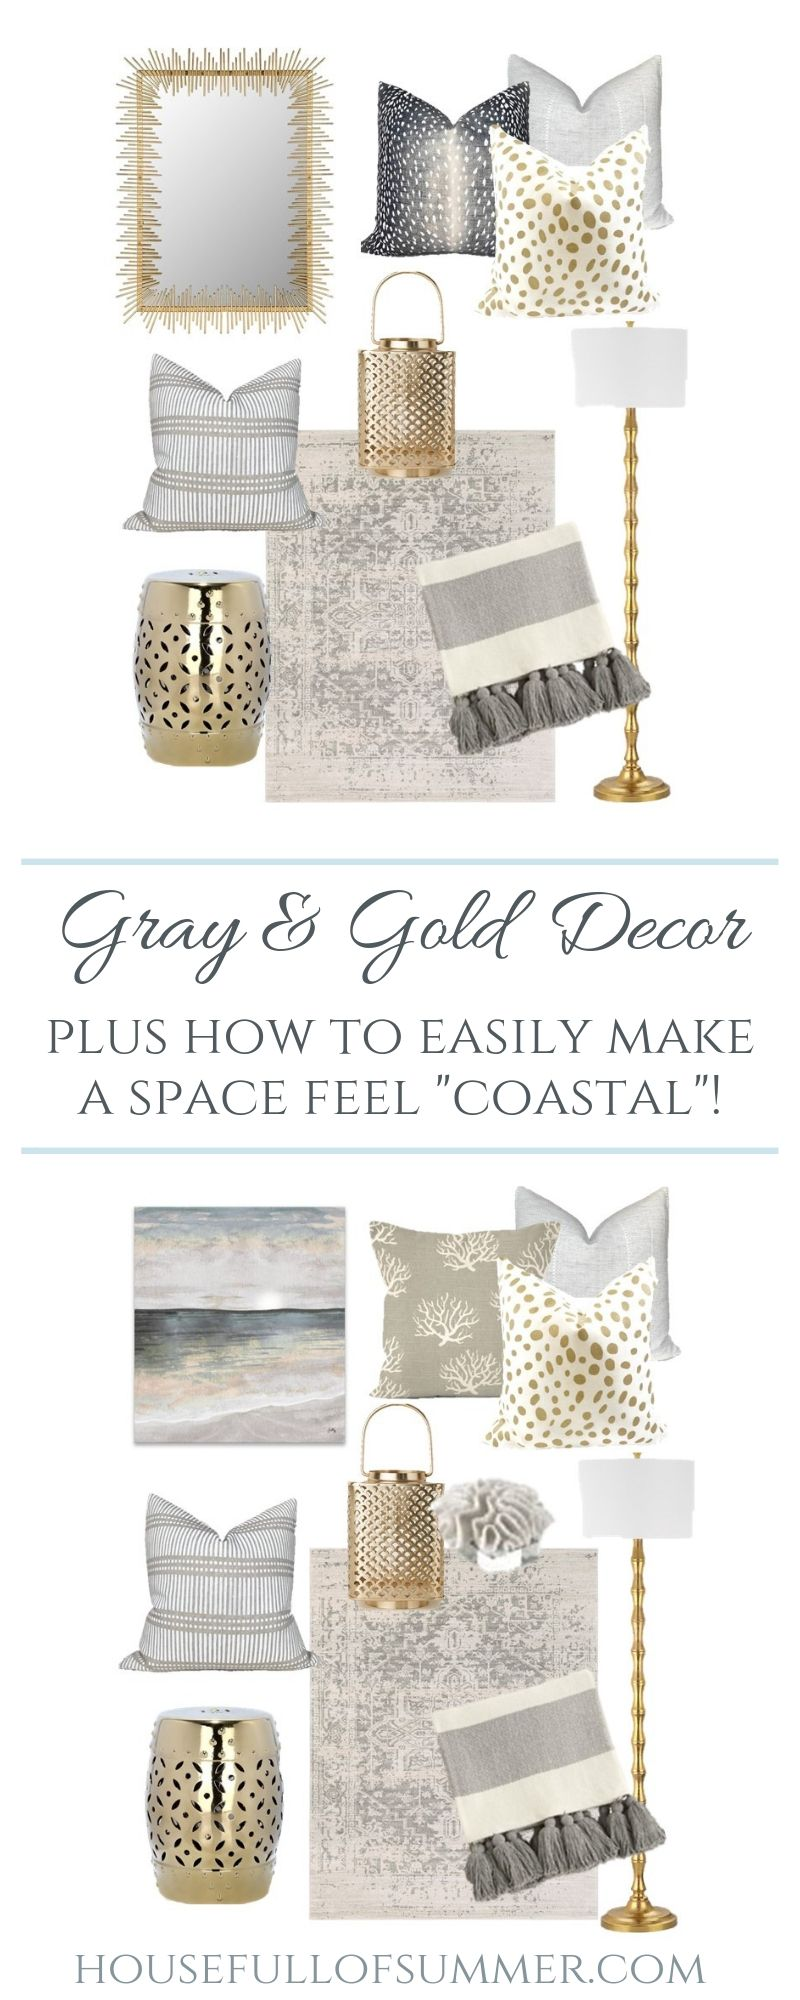 """Photo of Mood Board : Gray & Gold Decor Plus How to Easily Make a Space Feel """"Coastal"""" — House Full of Summer – Coastal Home & Lifestyle"""